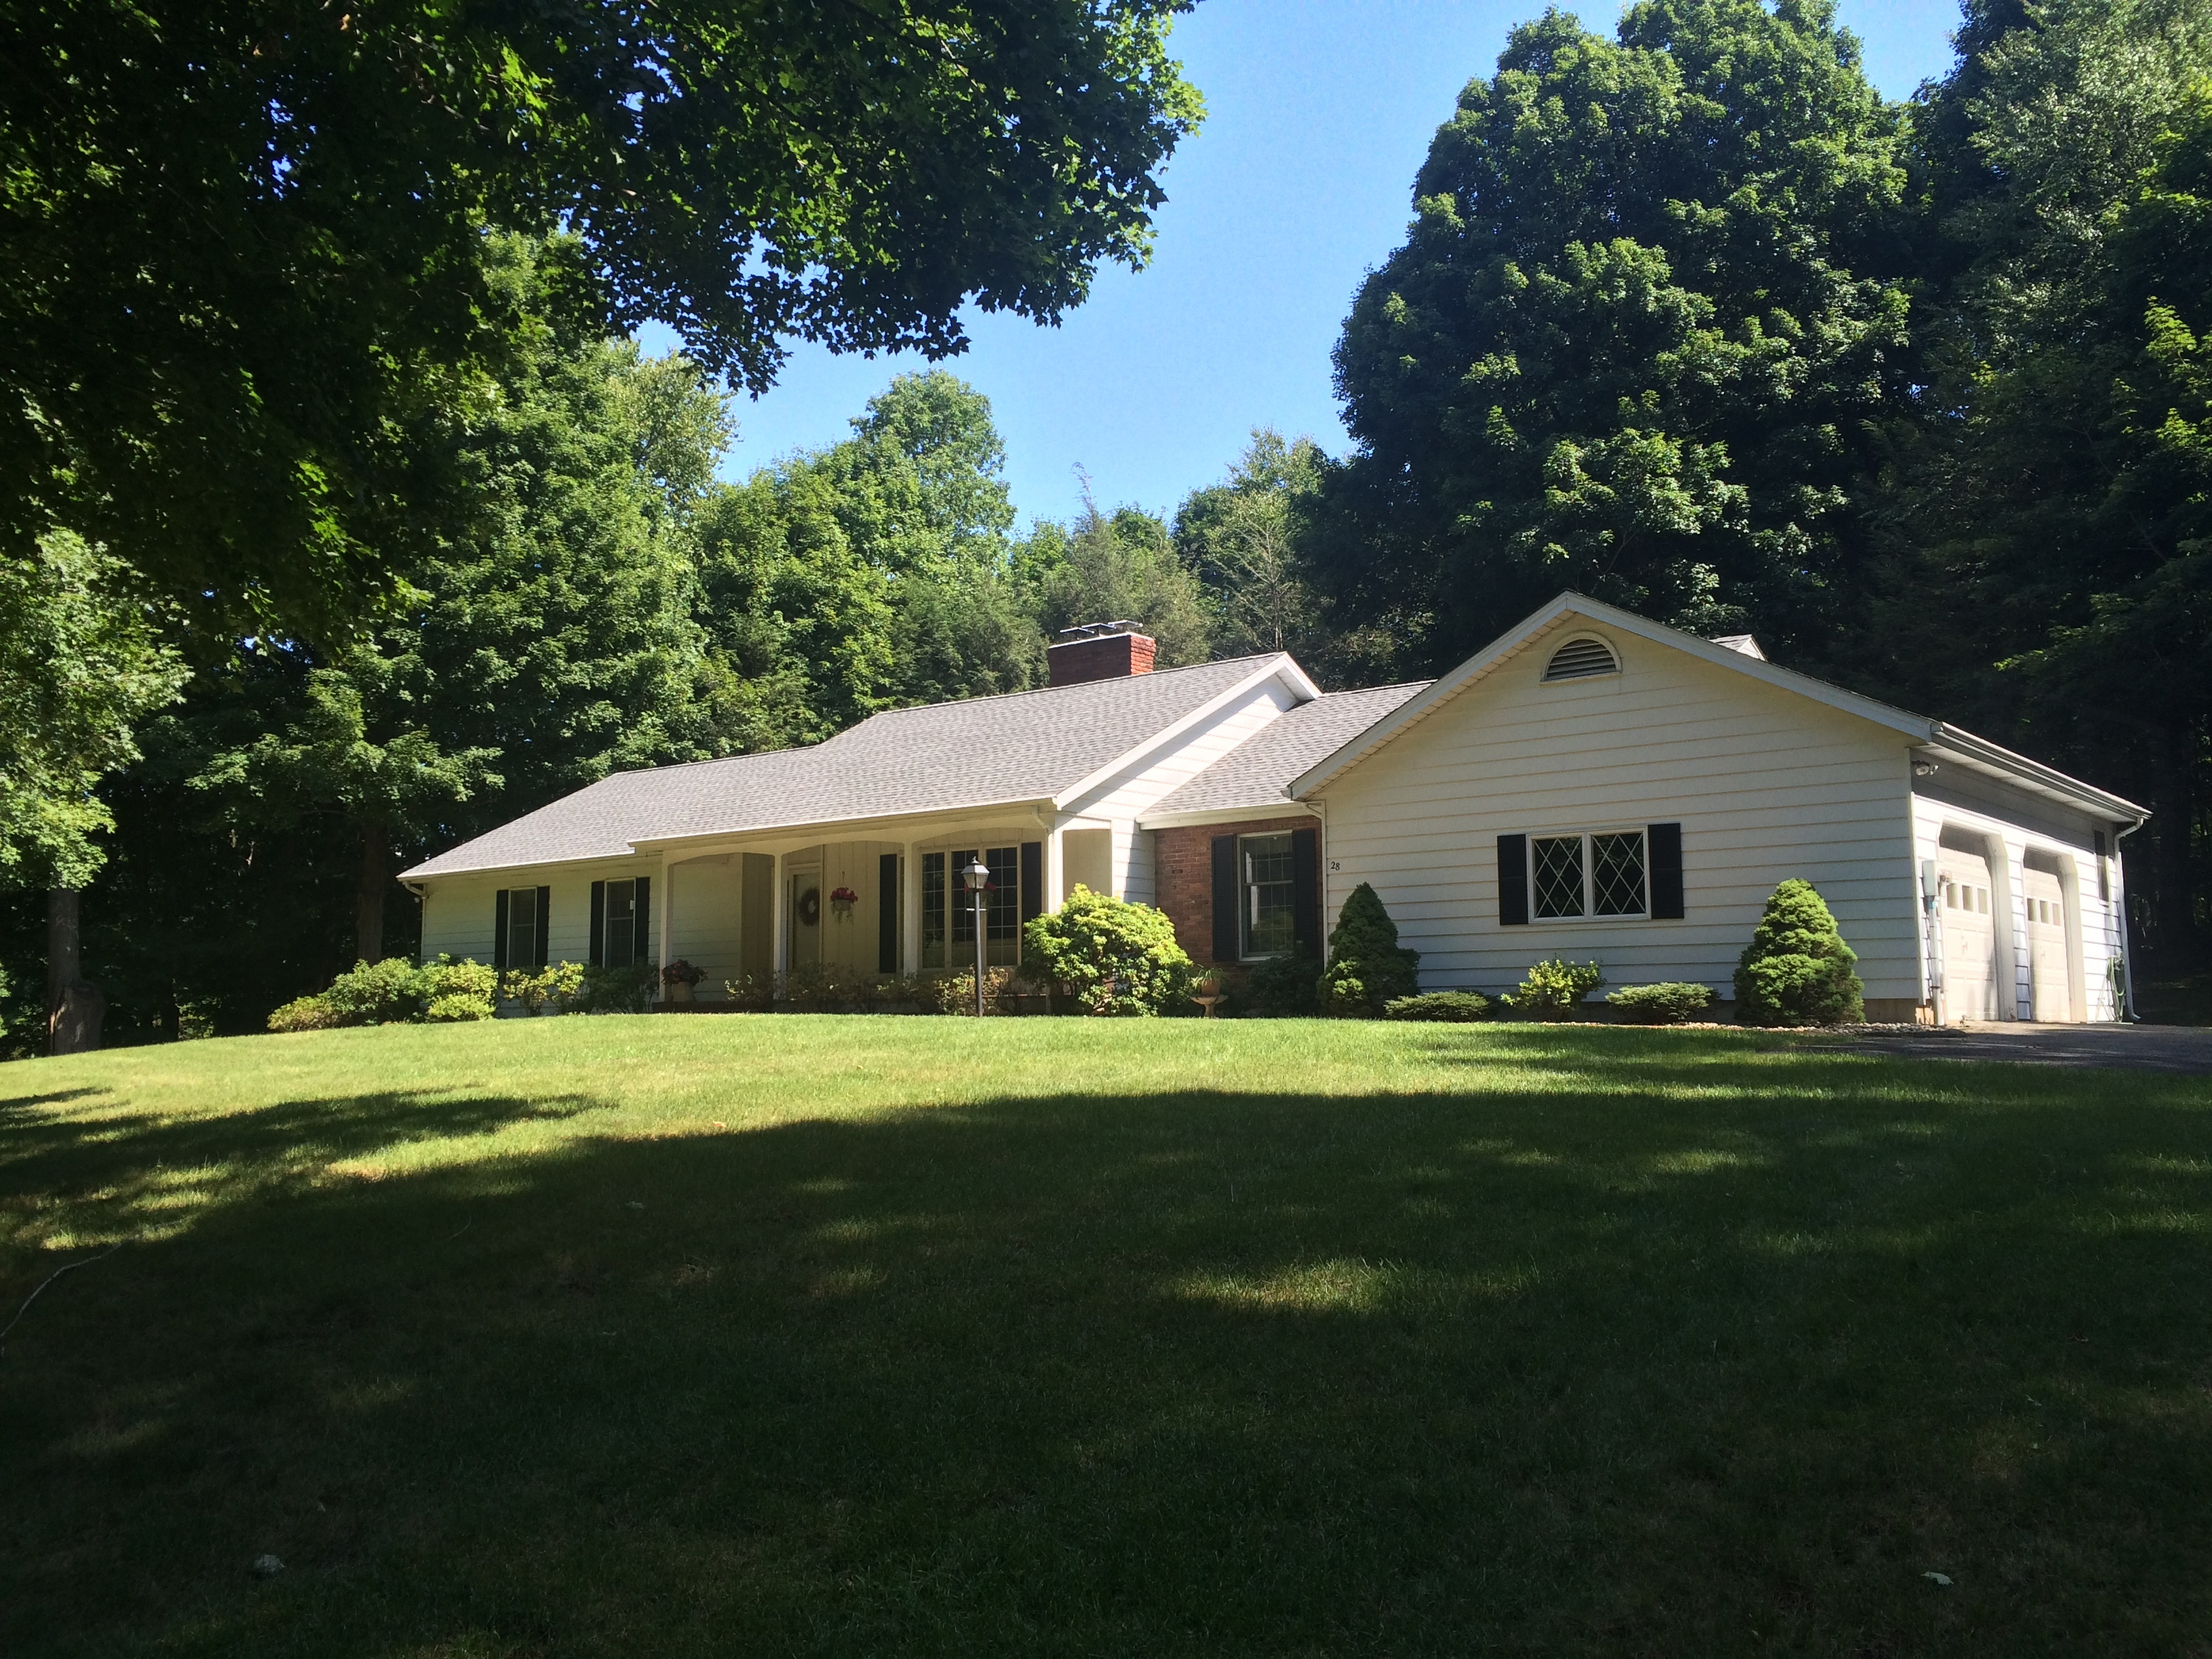 Single Family Home for Sale at Westside Ranch 28 Wintergreen Hill Road Danbury, Connecticut 06811 United States